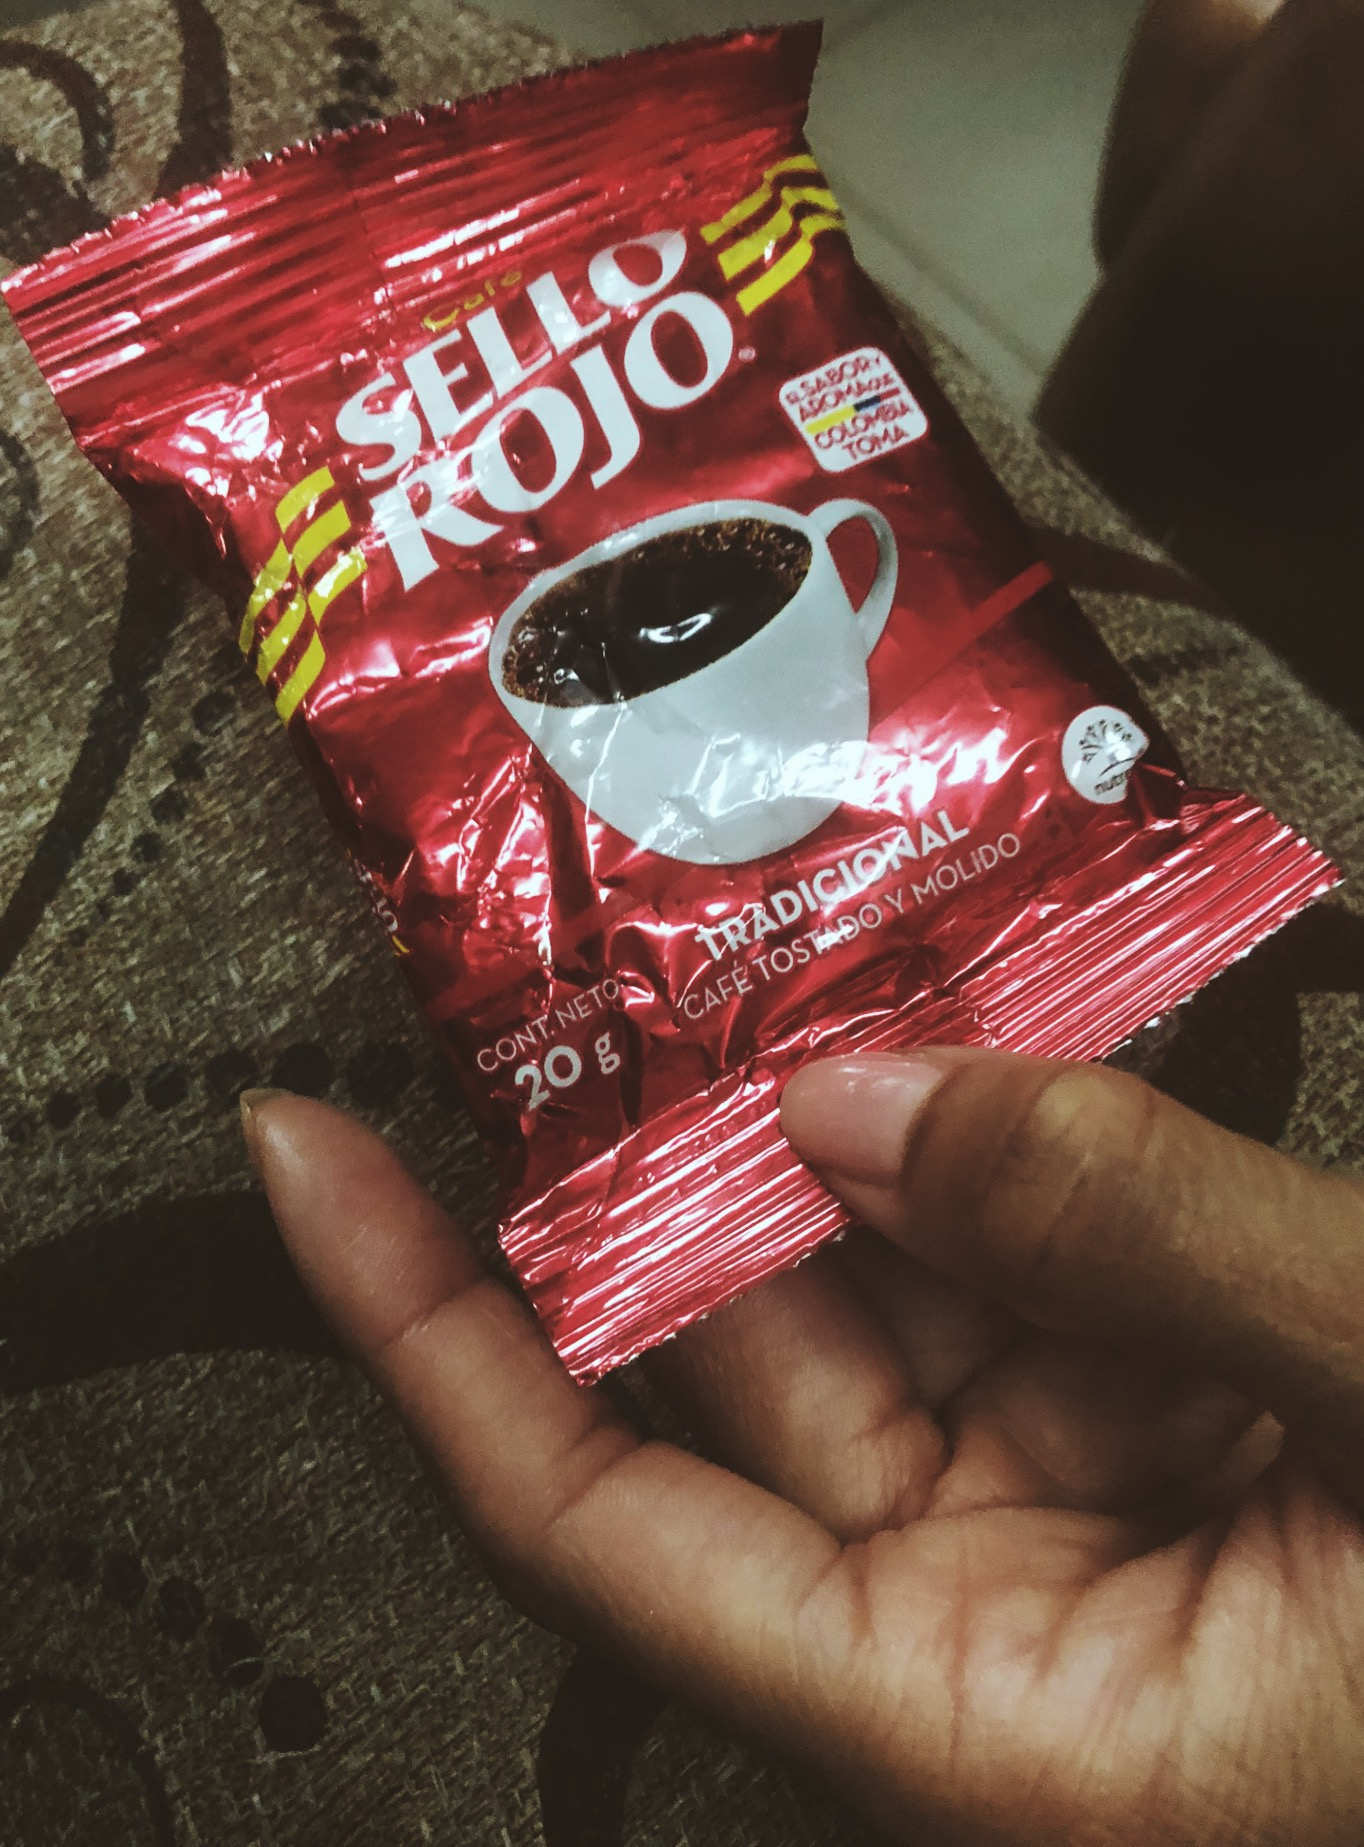 4. Visit a local grocery store or market to buy Sella Rojo, traditional Colombian coffee to take home with you. This will be the cheapest place to find it.